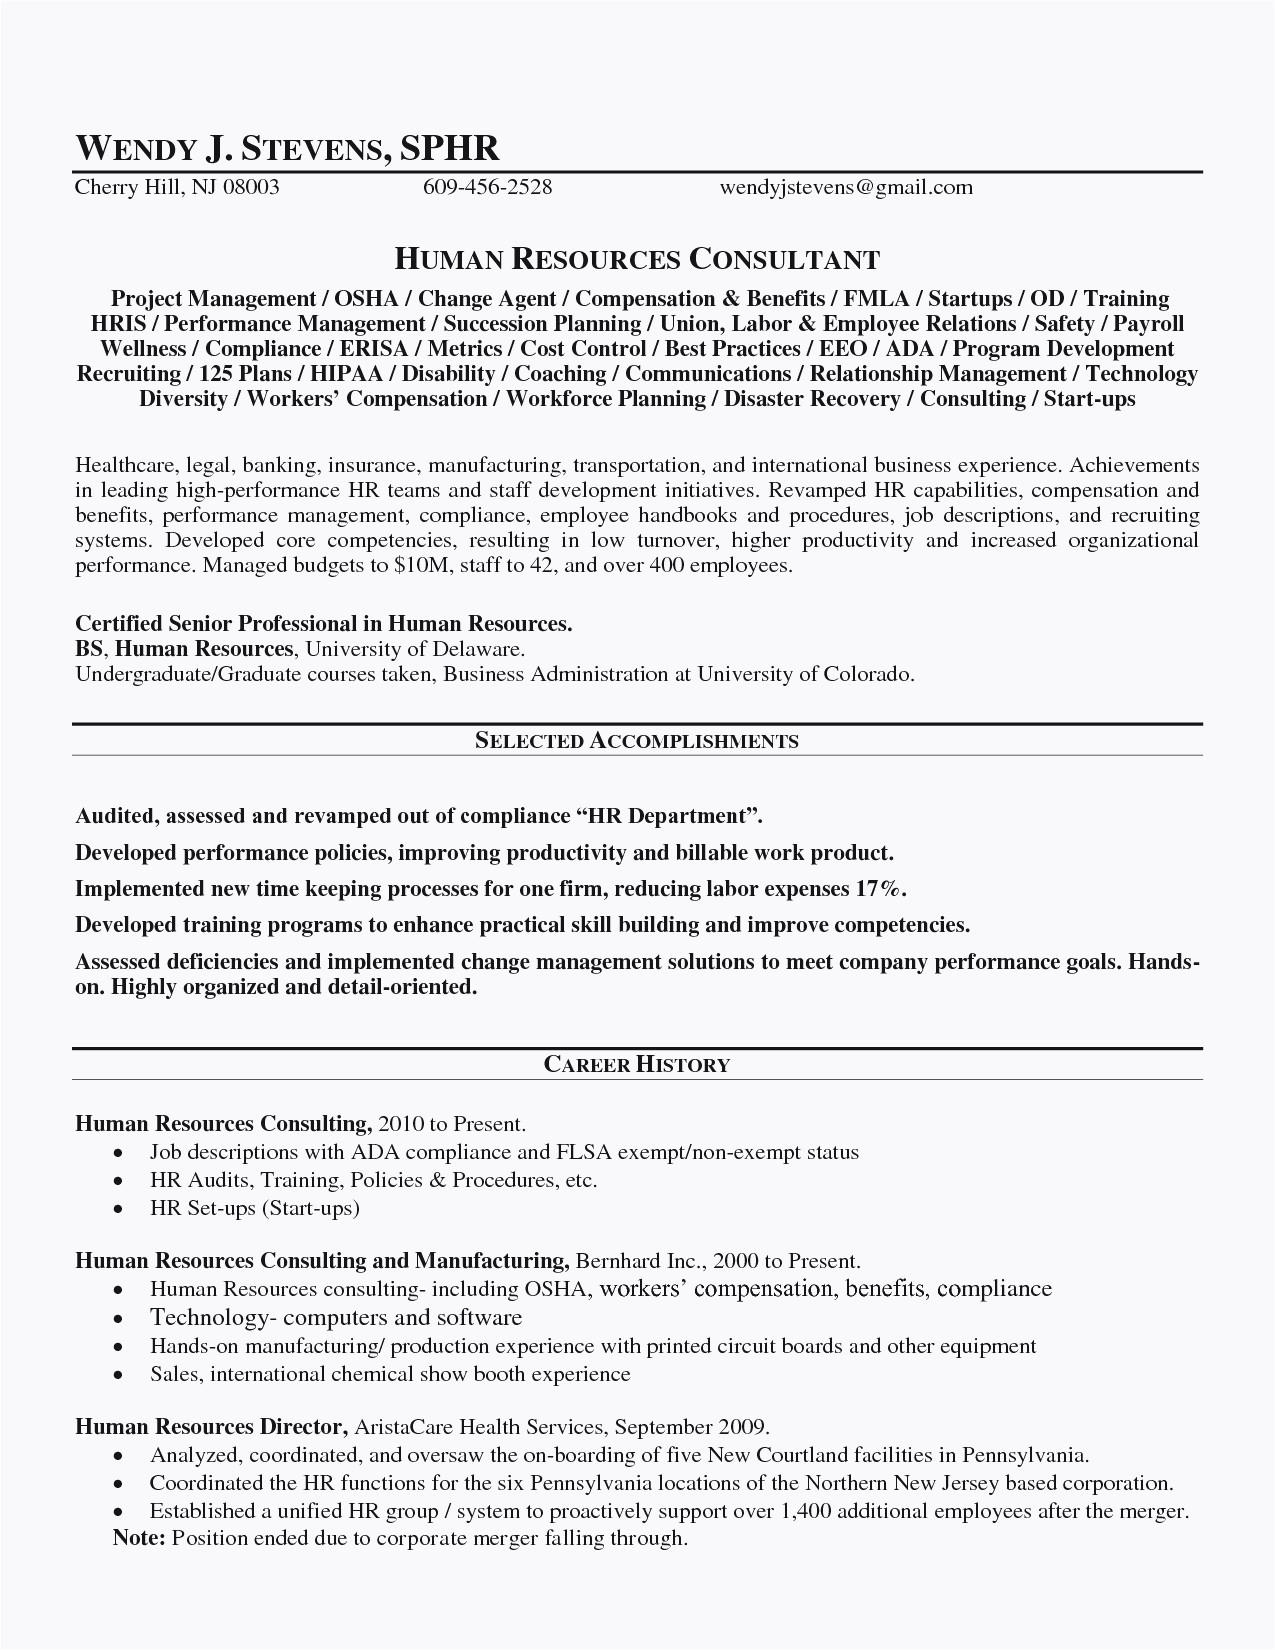 Resume Templates for Manufacturing Jobs - Resume format for foreign Jobs Fresh Cv Agent De Production Resume